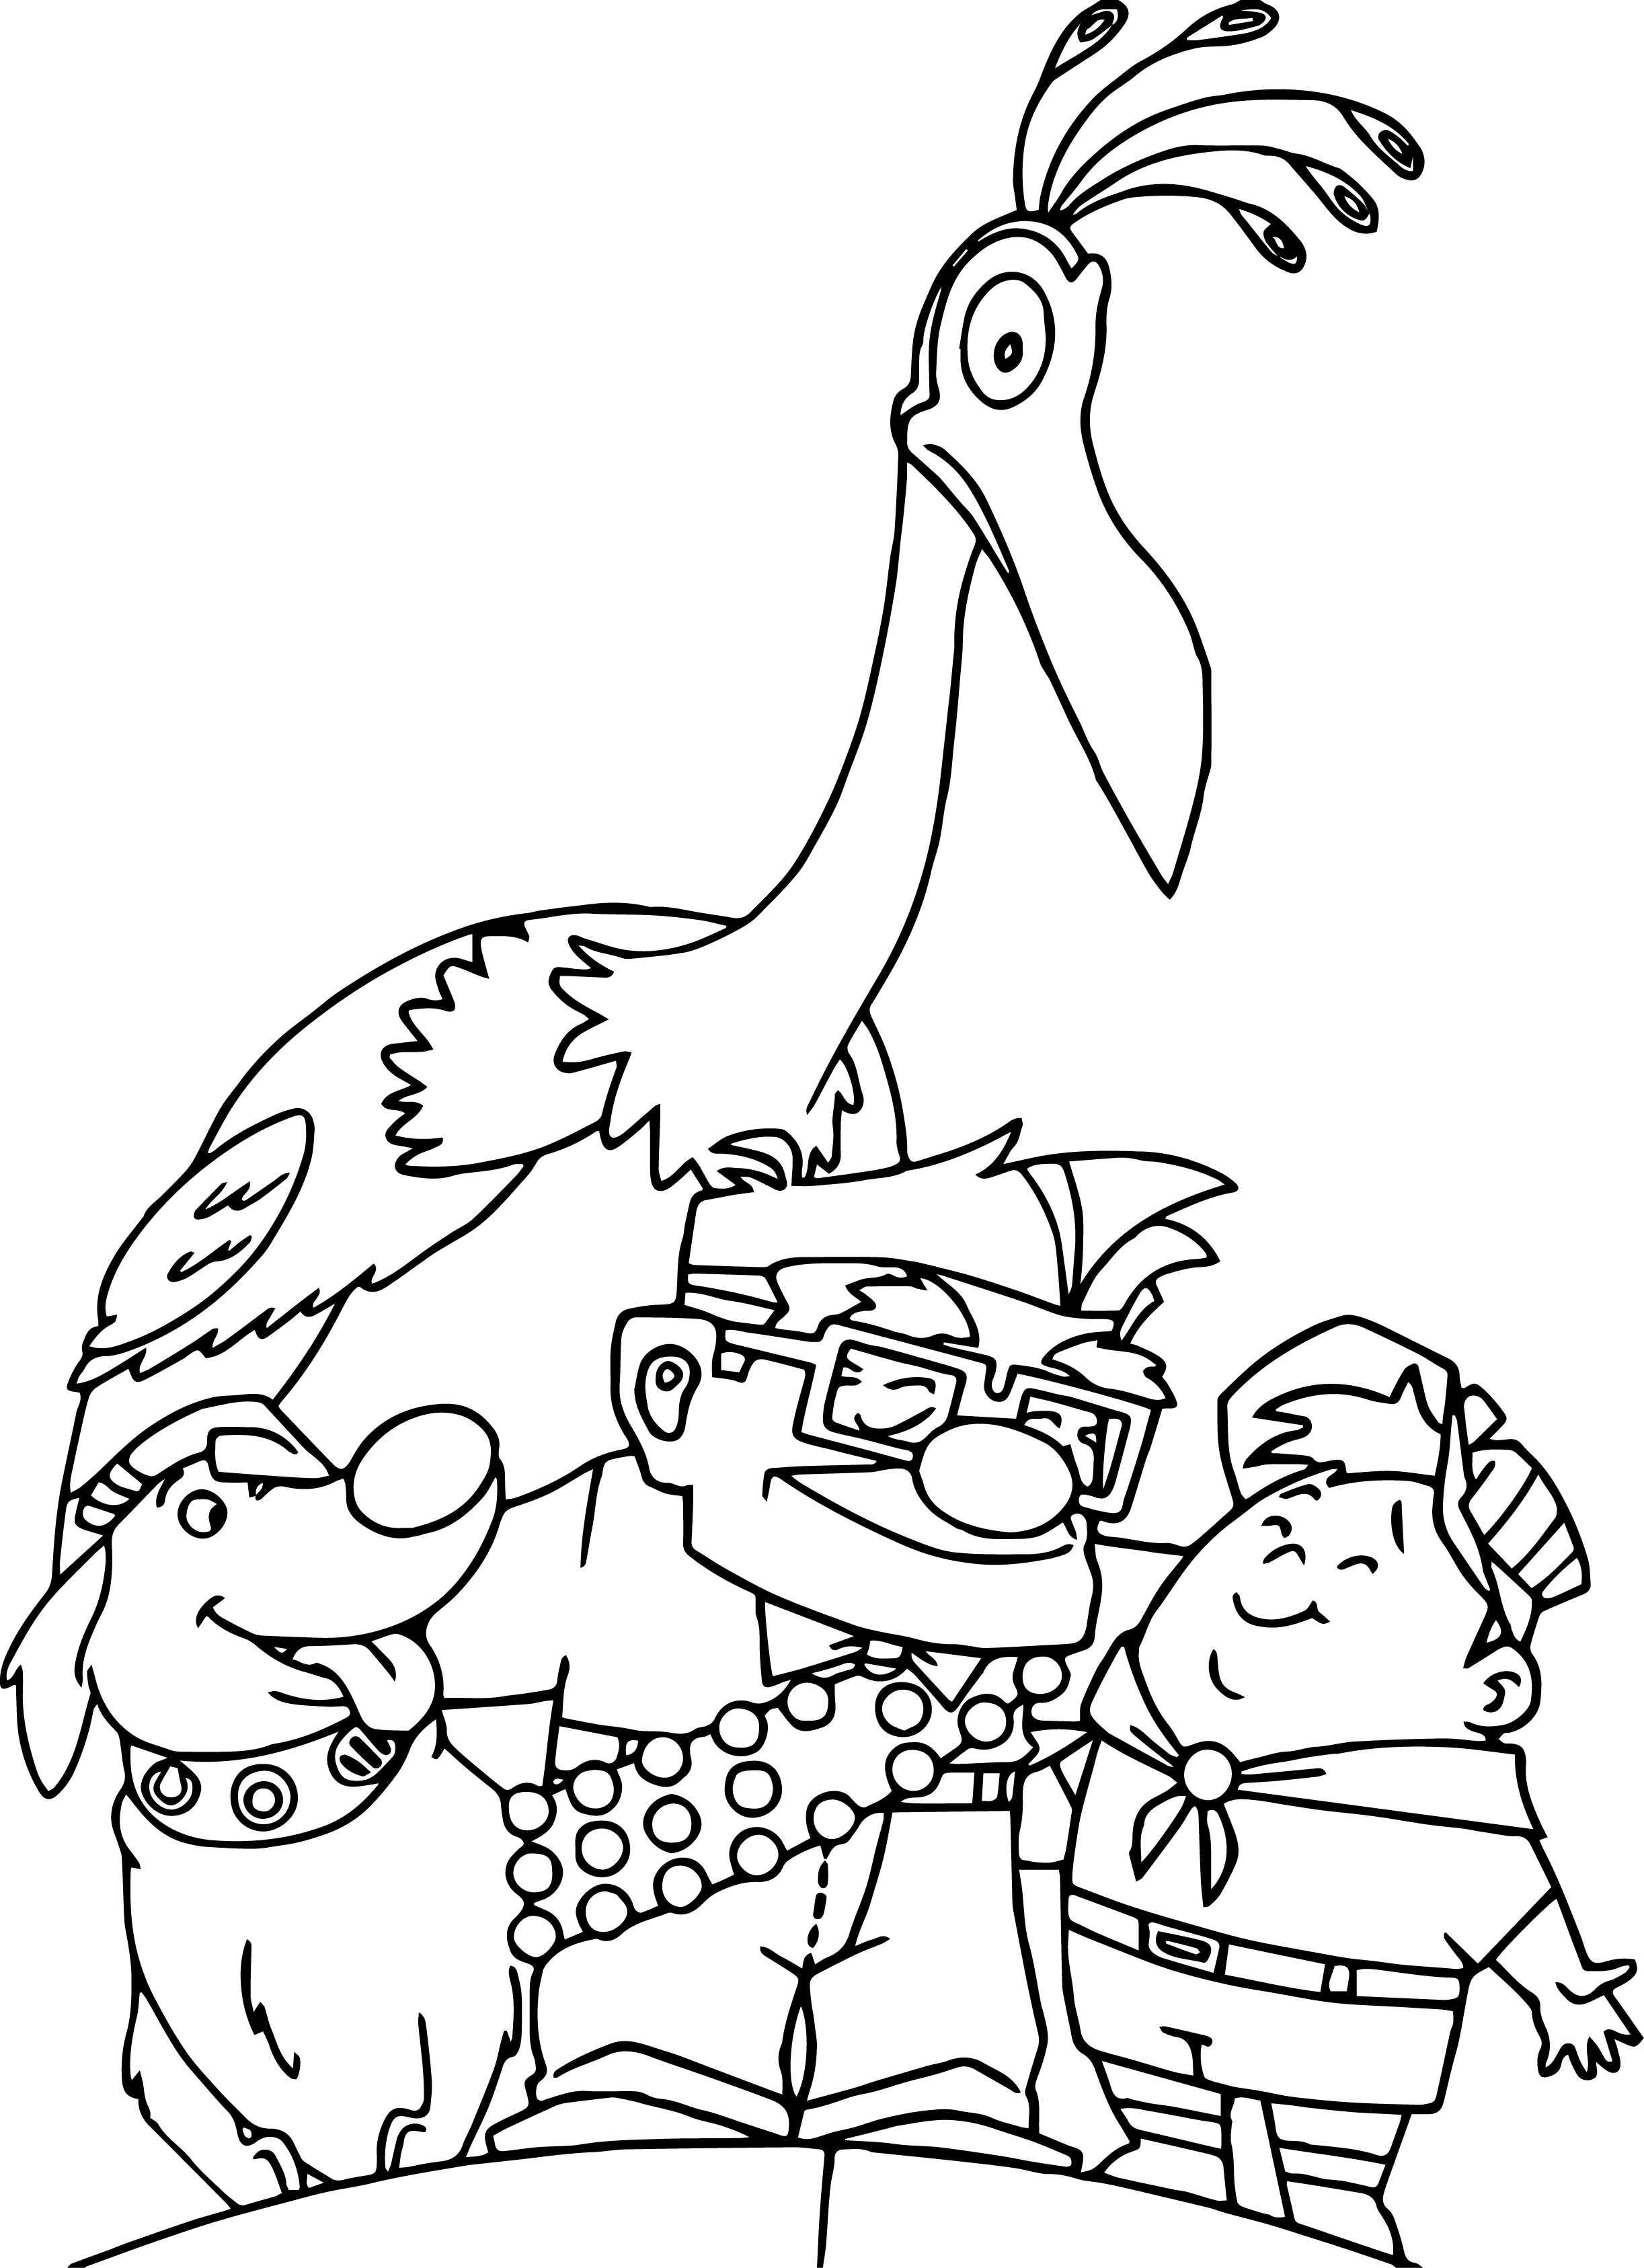 disney pixar up coloring pages wecoloringpage